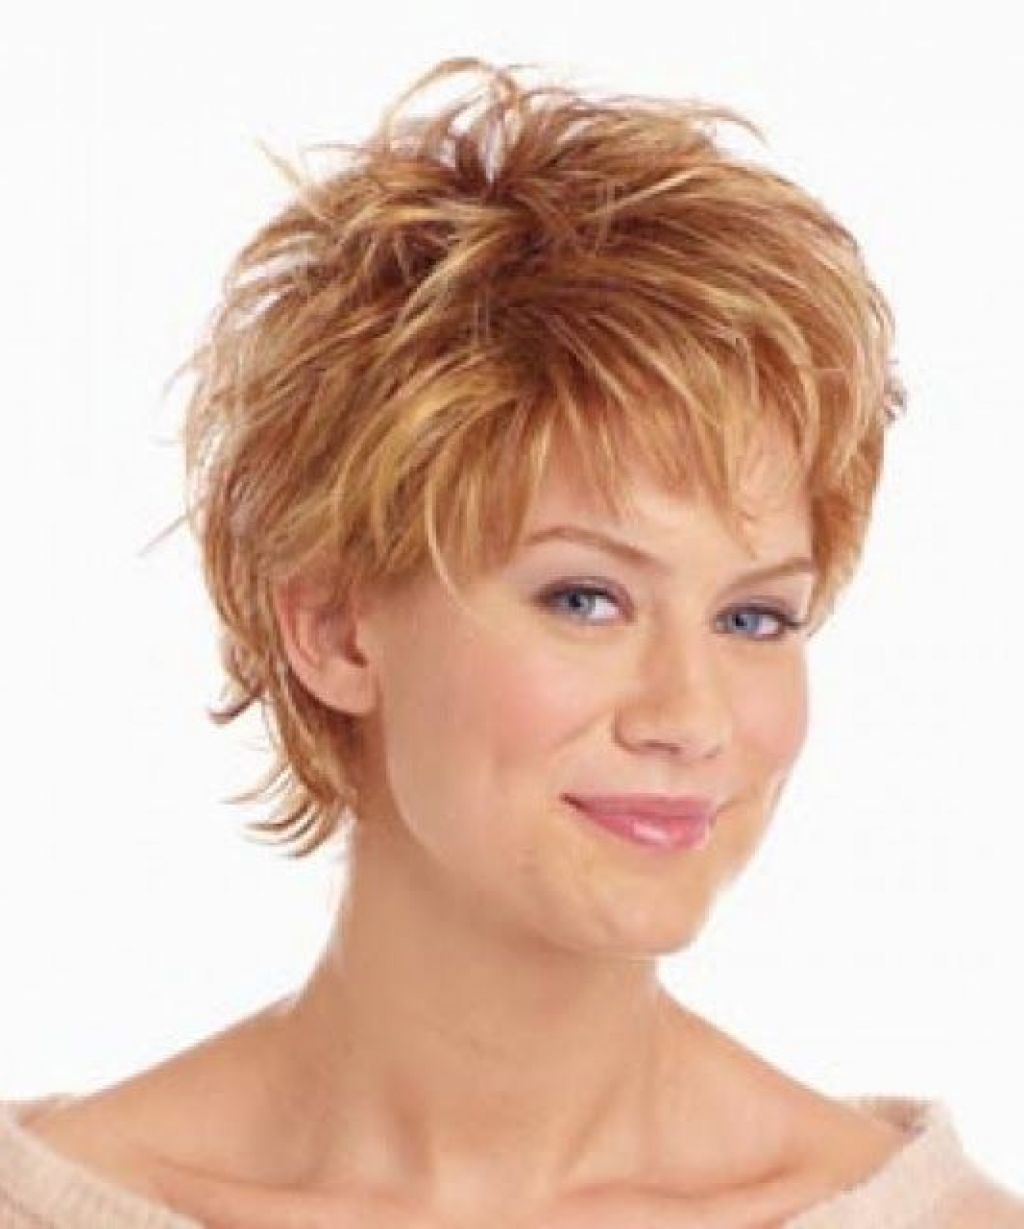 short curly gray hairstyles for women over 50 - google search